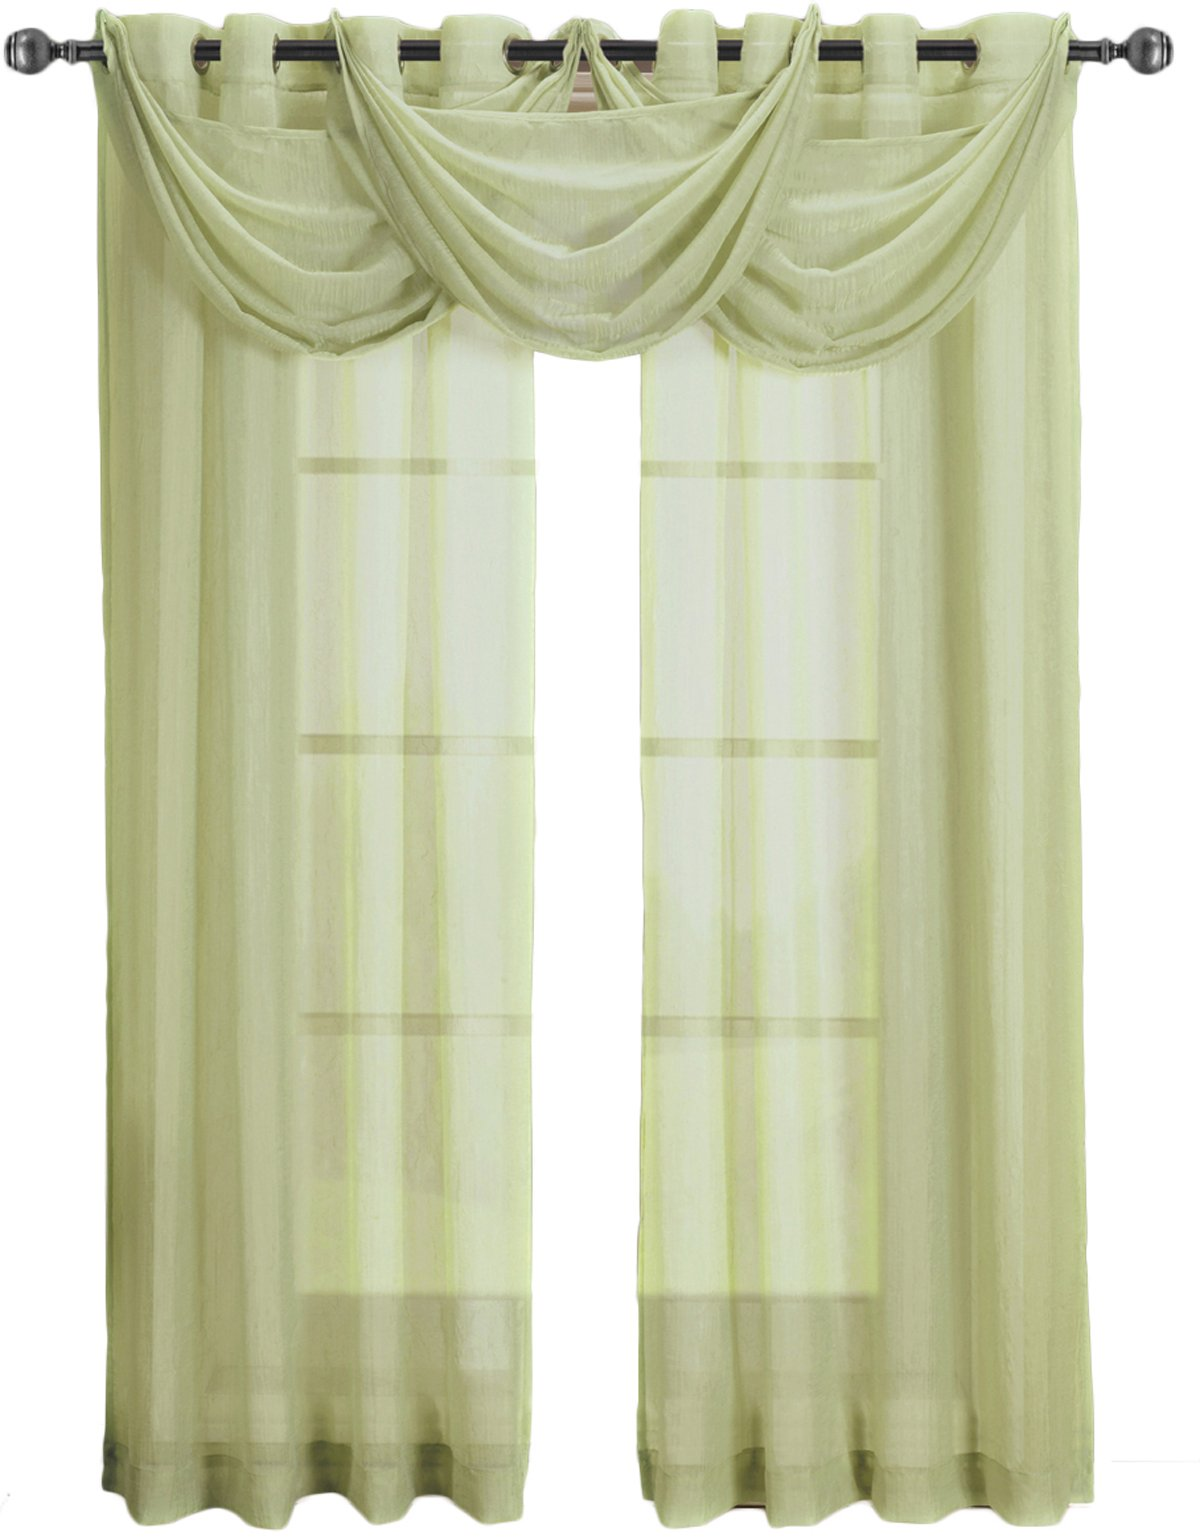 Royal Hotel Abri Spring-Green Grommet Crushed Sheer Curtain Panel,50x108 inches